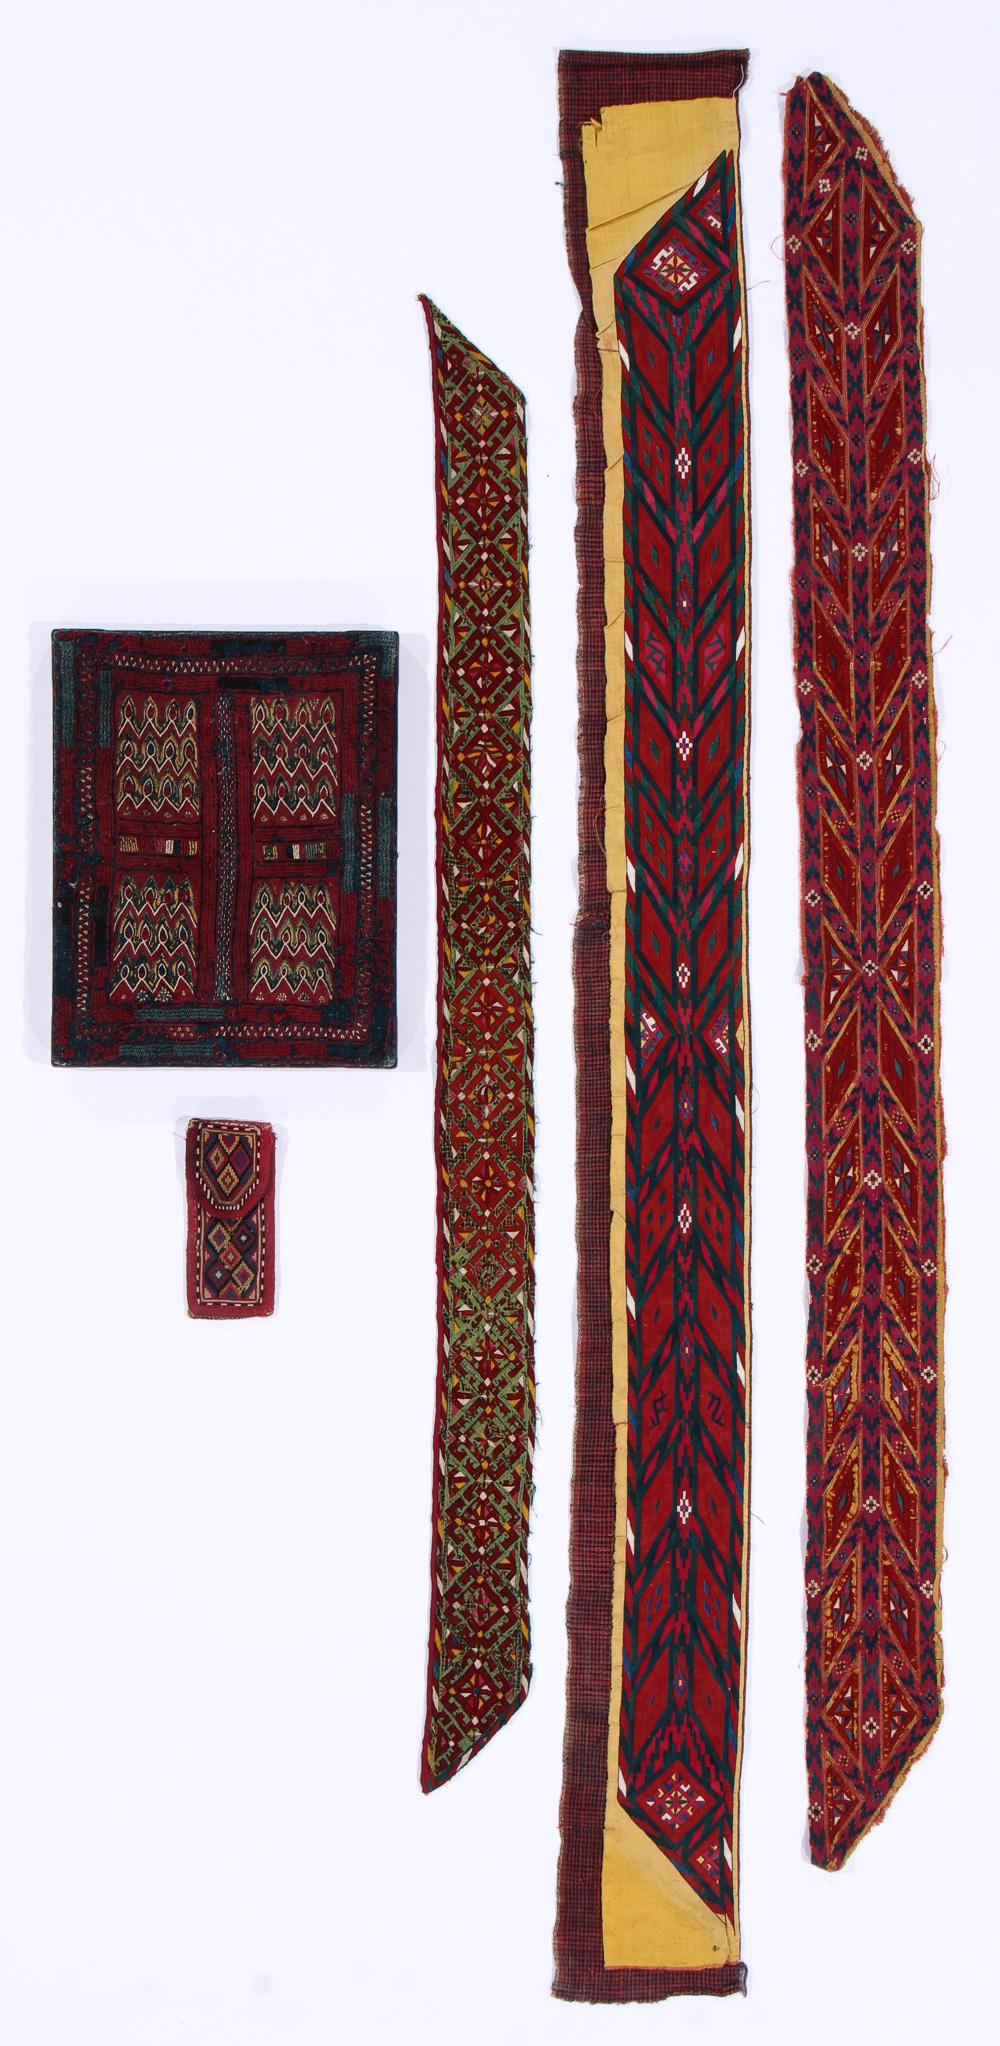 Ethnographic Lot of Antique Embroidered Textiles